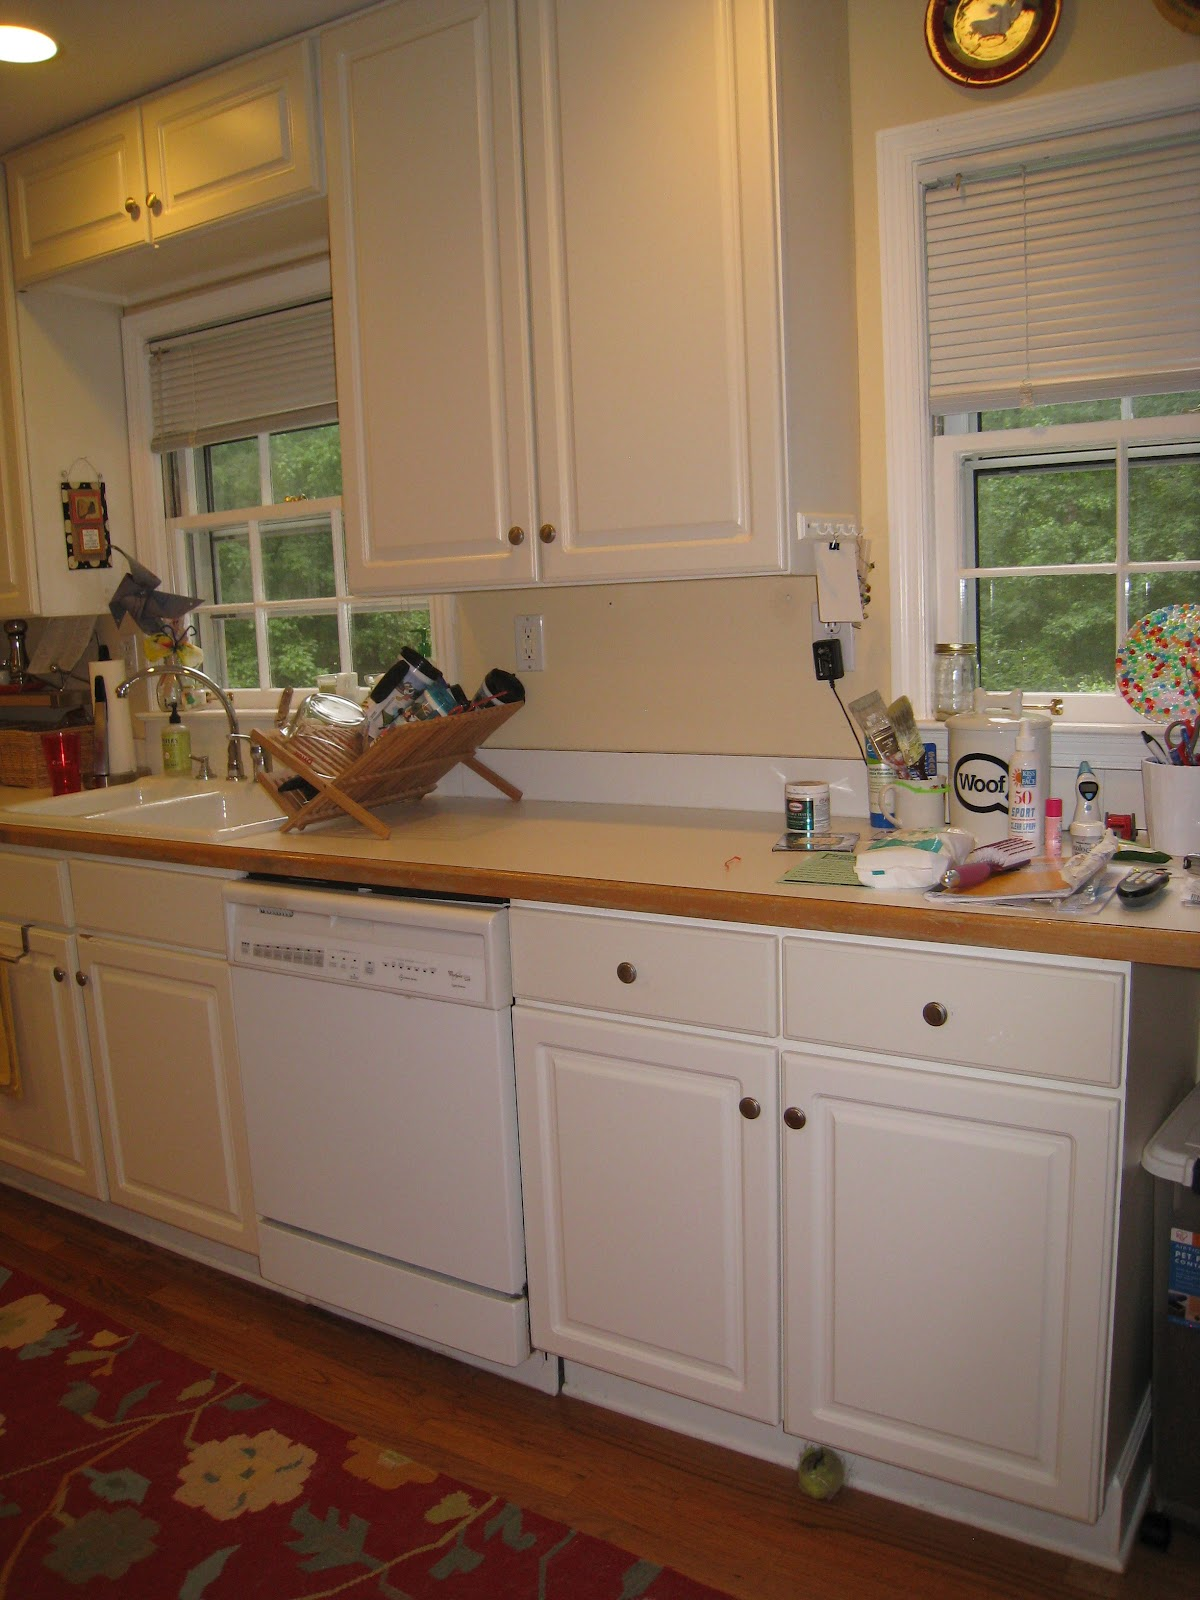 We are getting a new kitchen! - The DIY Bungalow